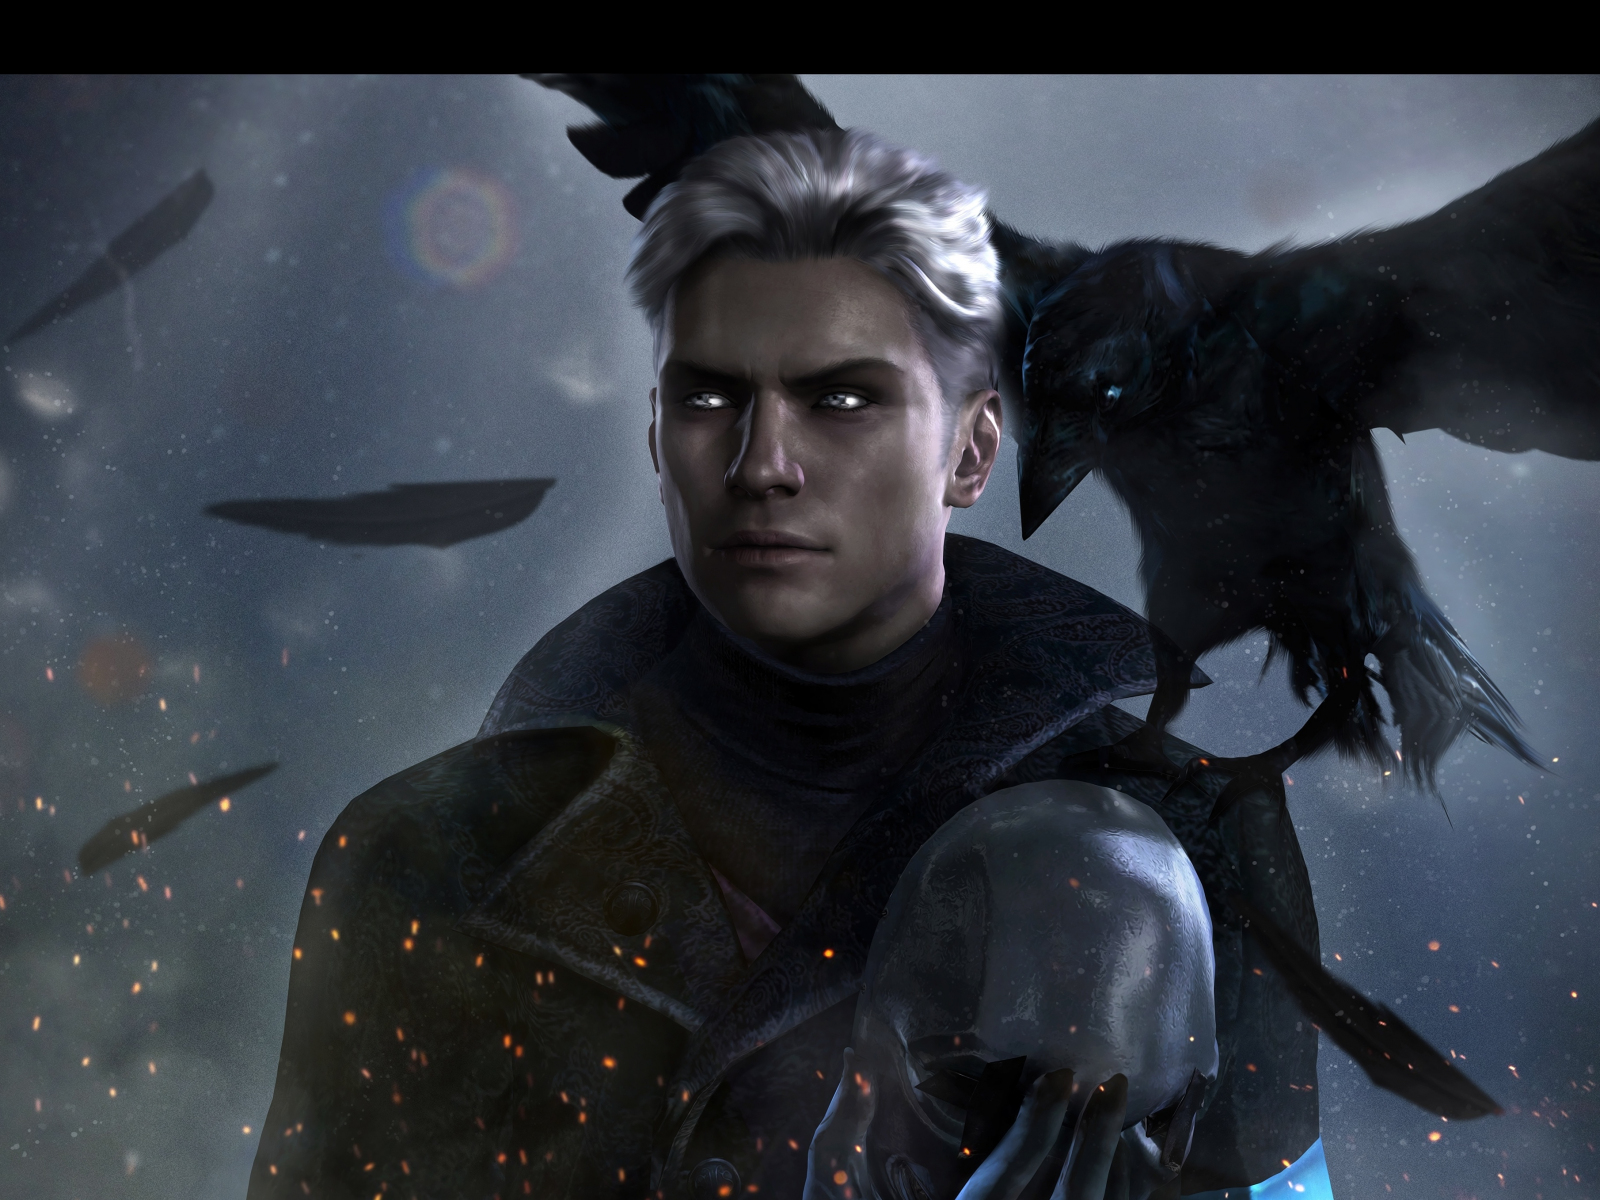 Download 1600x1200 Wallpaper Vergil Devil May Cry 5 Video